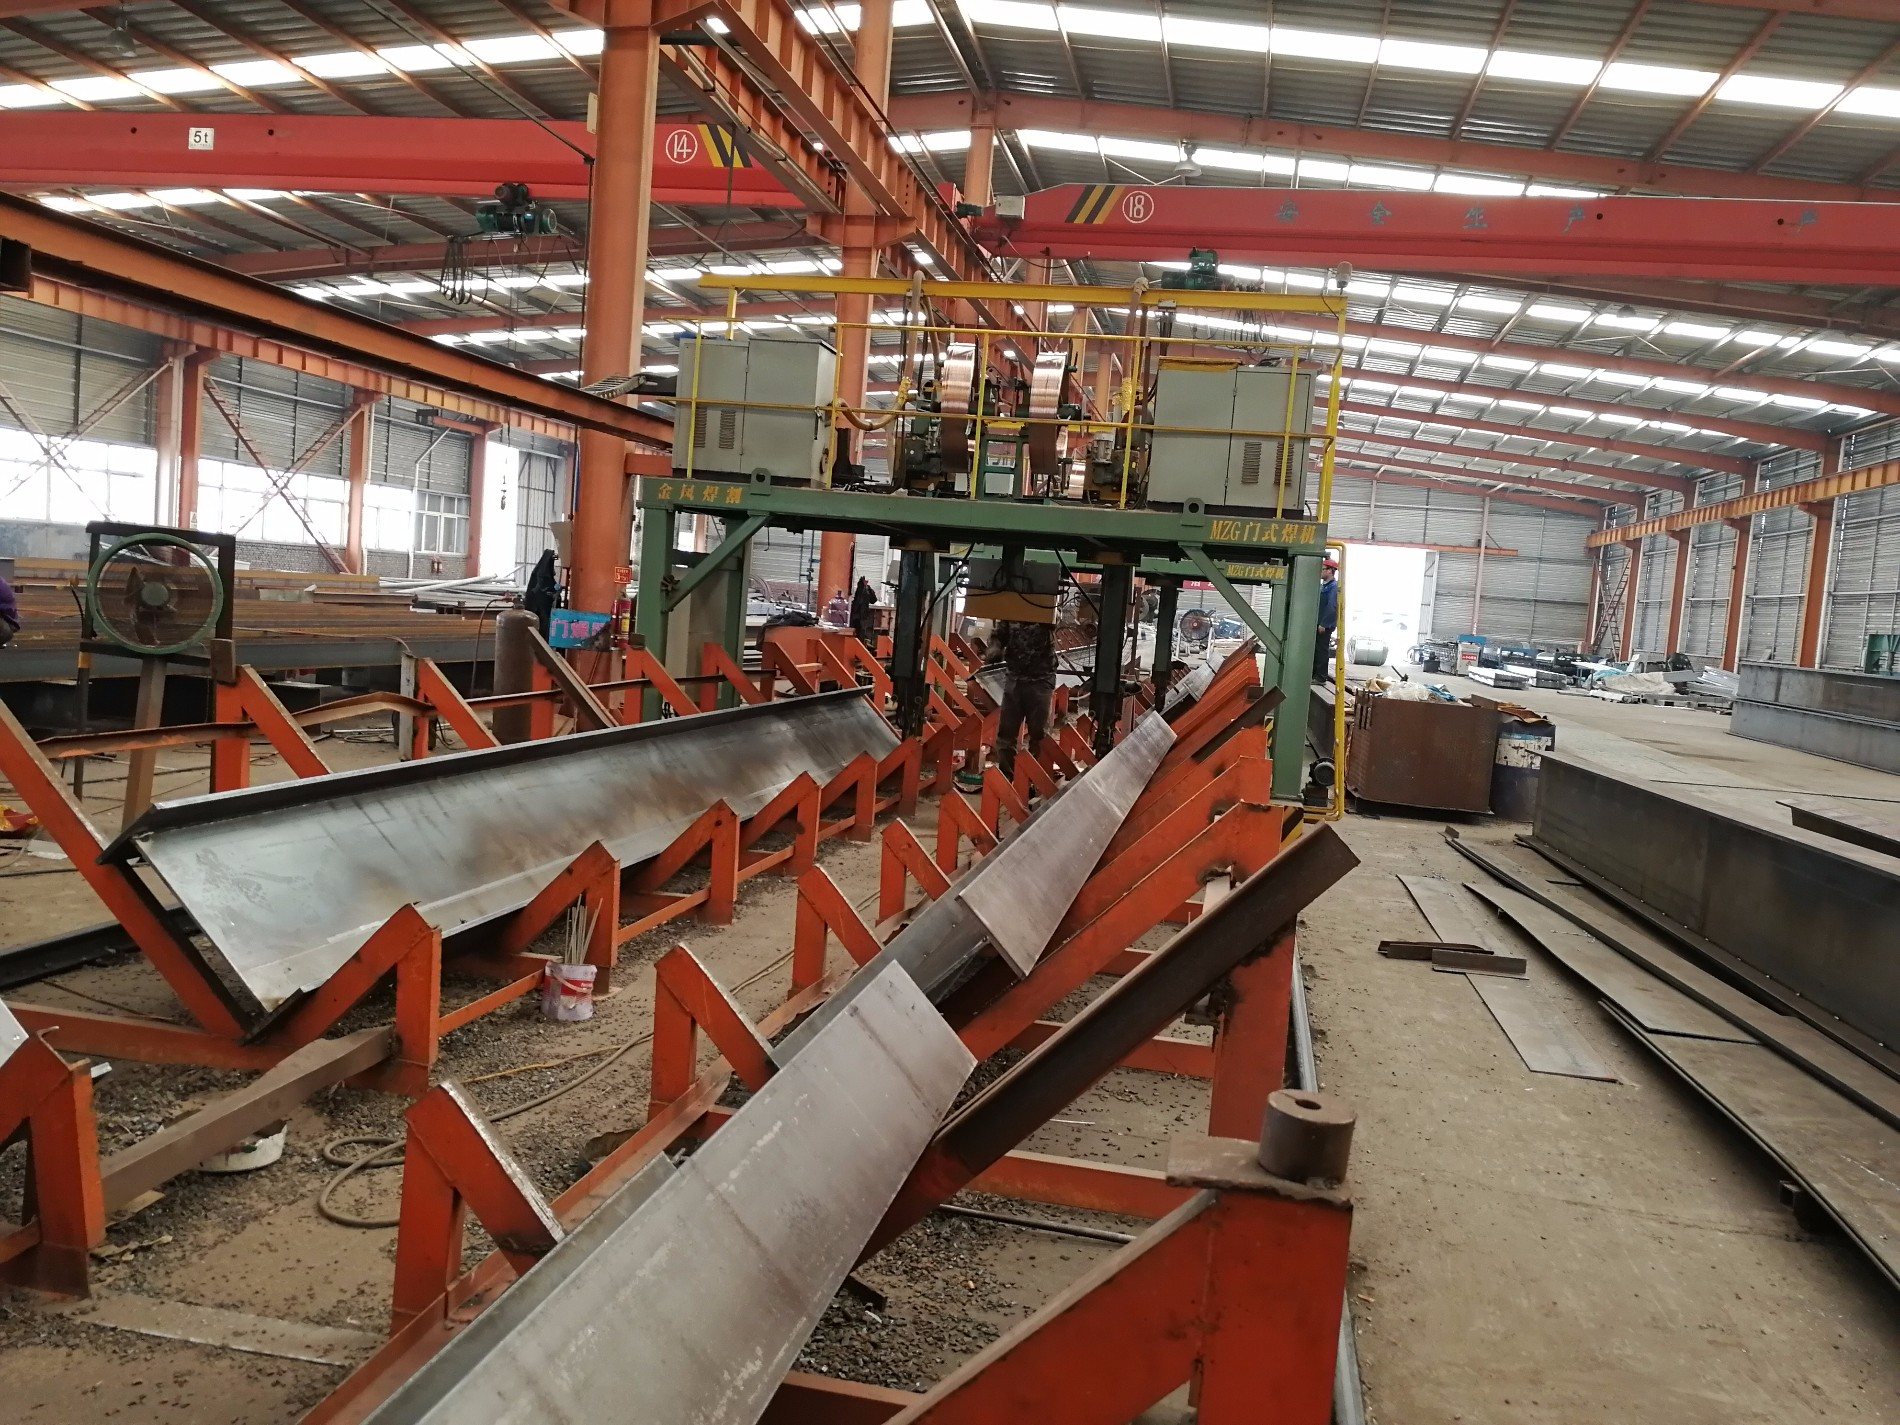 High quality Steel Economic Prefabricated Building Material Steel Workshop Structures Quotes,China Steel Economic Prefabricated Building Material Steel Workshop Structures Factory,Steel Economic Prefabricated Building Material Steel Workshop Structures Purchasing